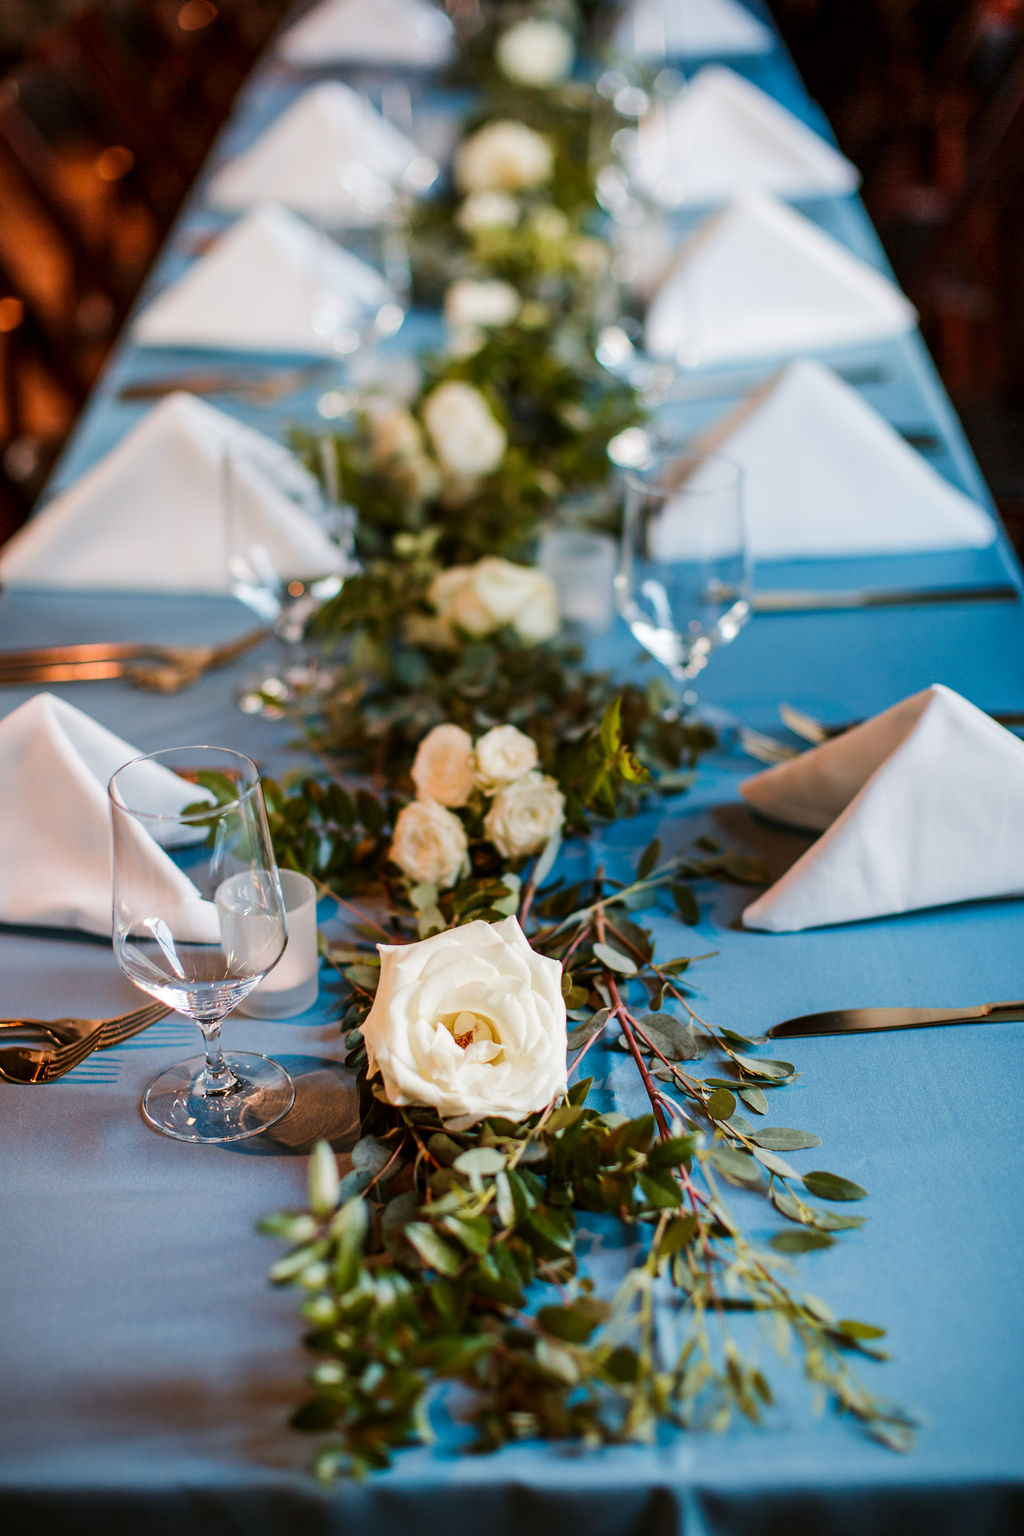 Eucalyptus garland table runners with floral accents of white and blush // TN Floral Designer